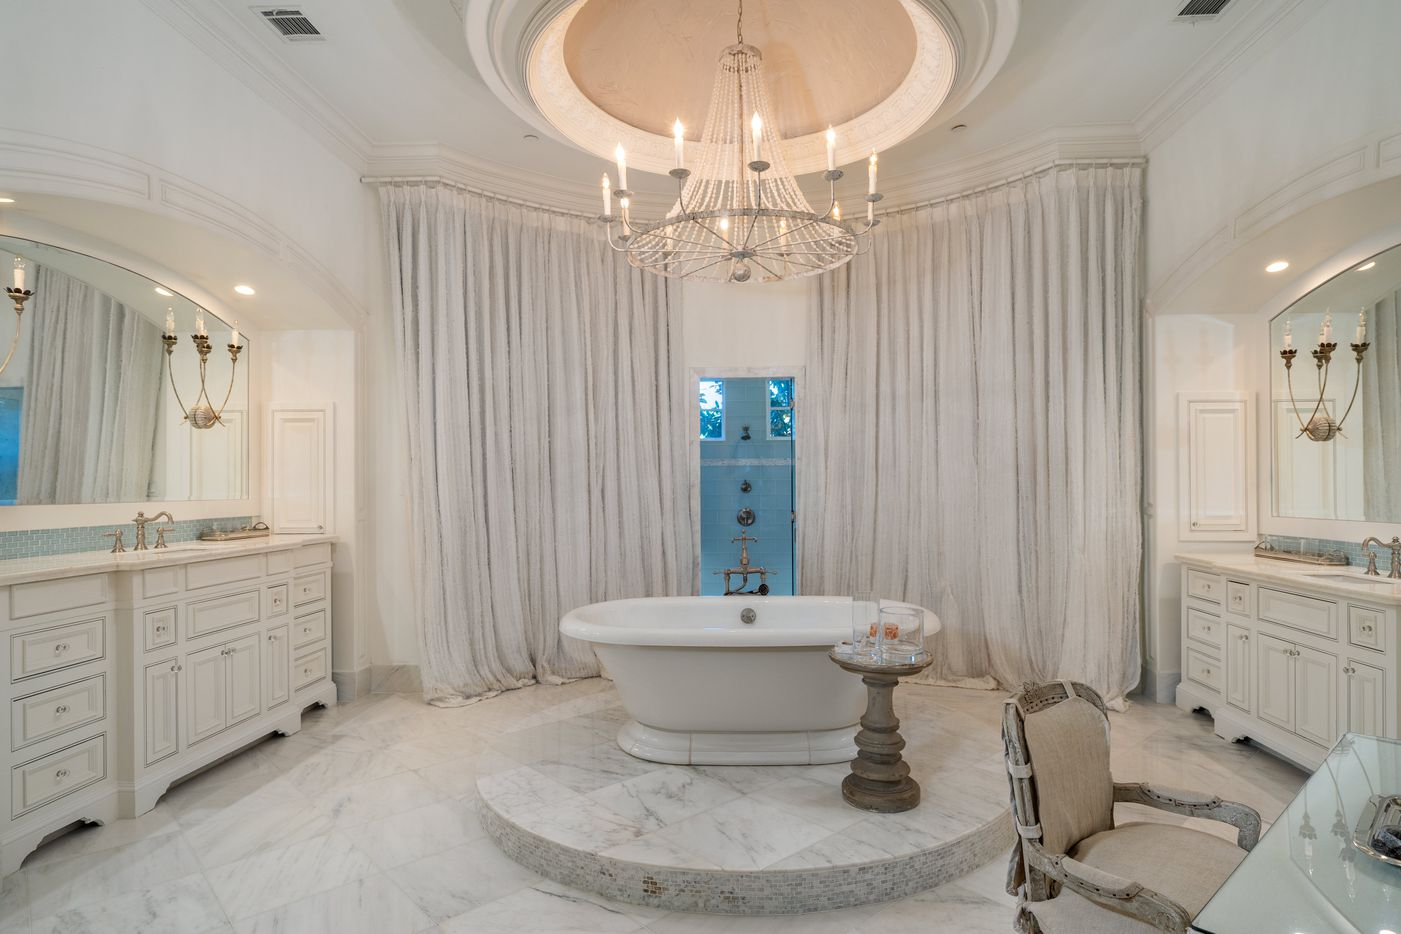 Former Dallas Cowboys star Jason Witten is selling his mansion in Westlake's Vaquero neighborhood for $4.7 million.